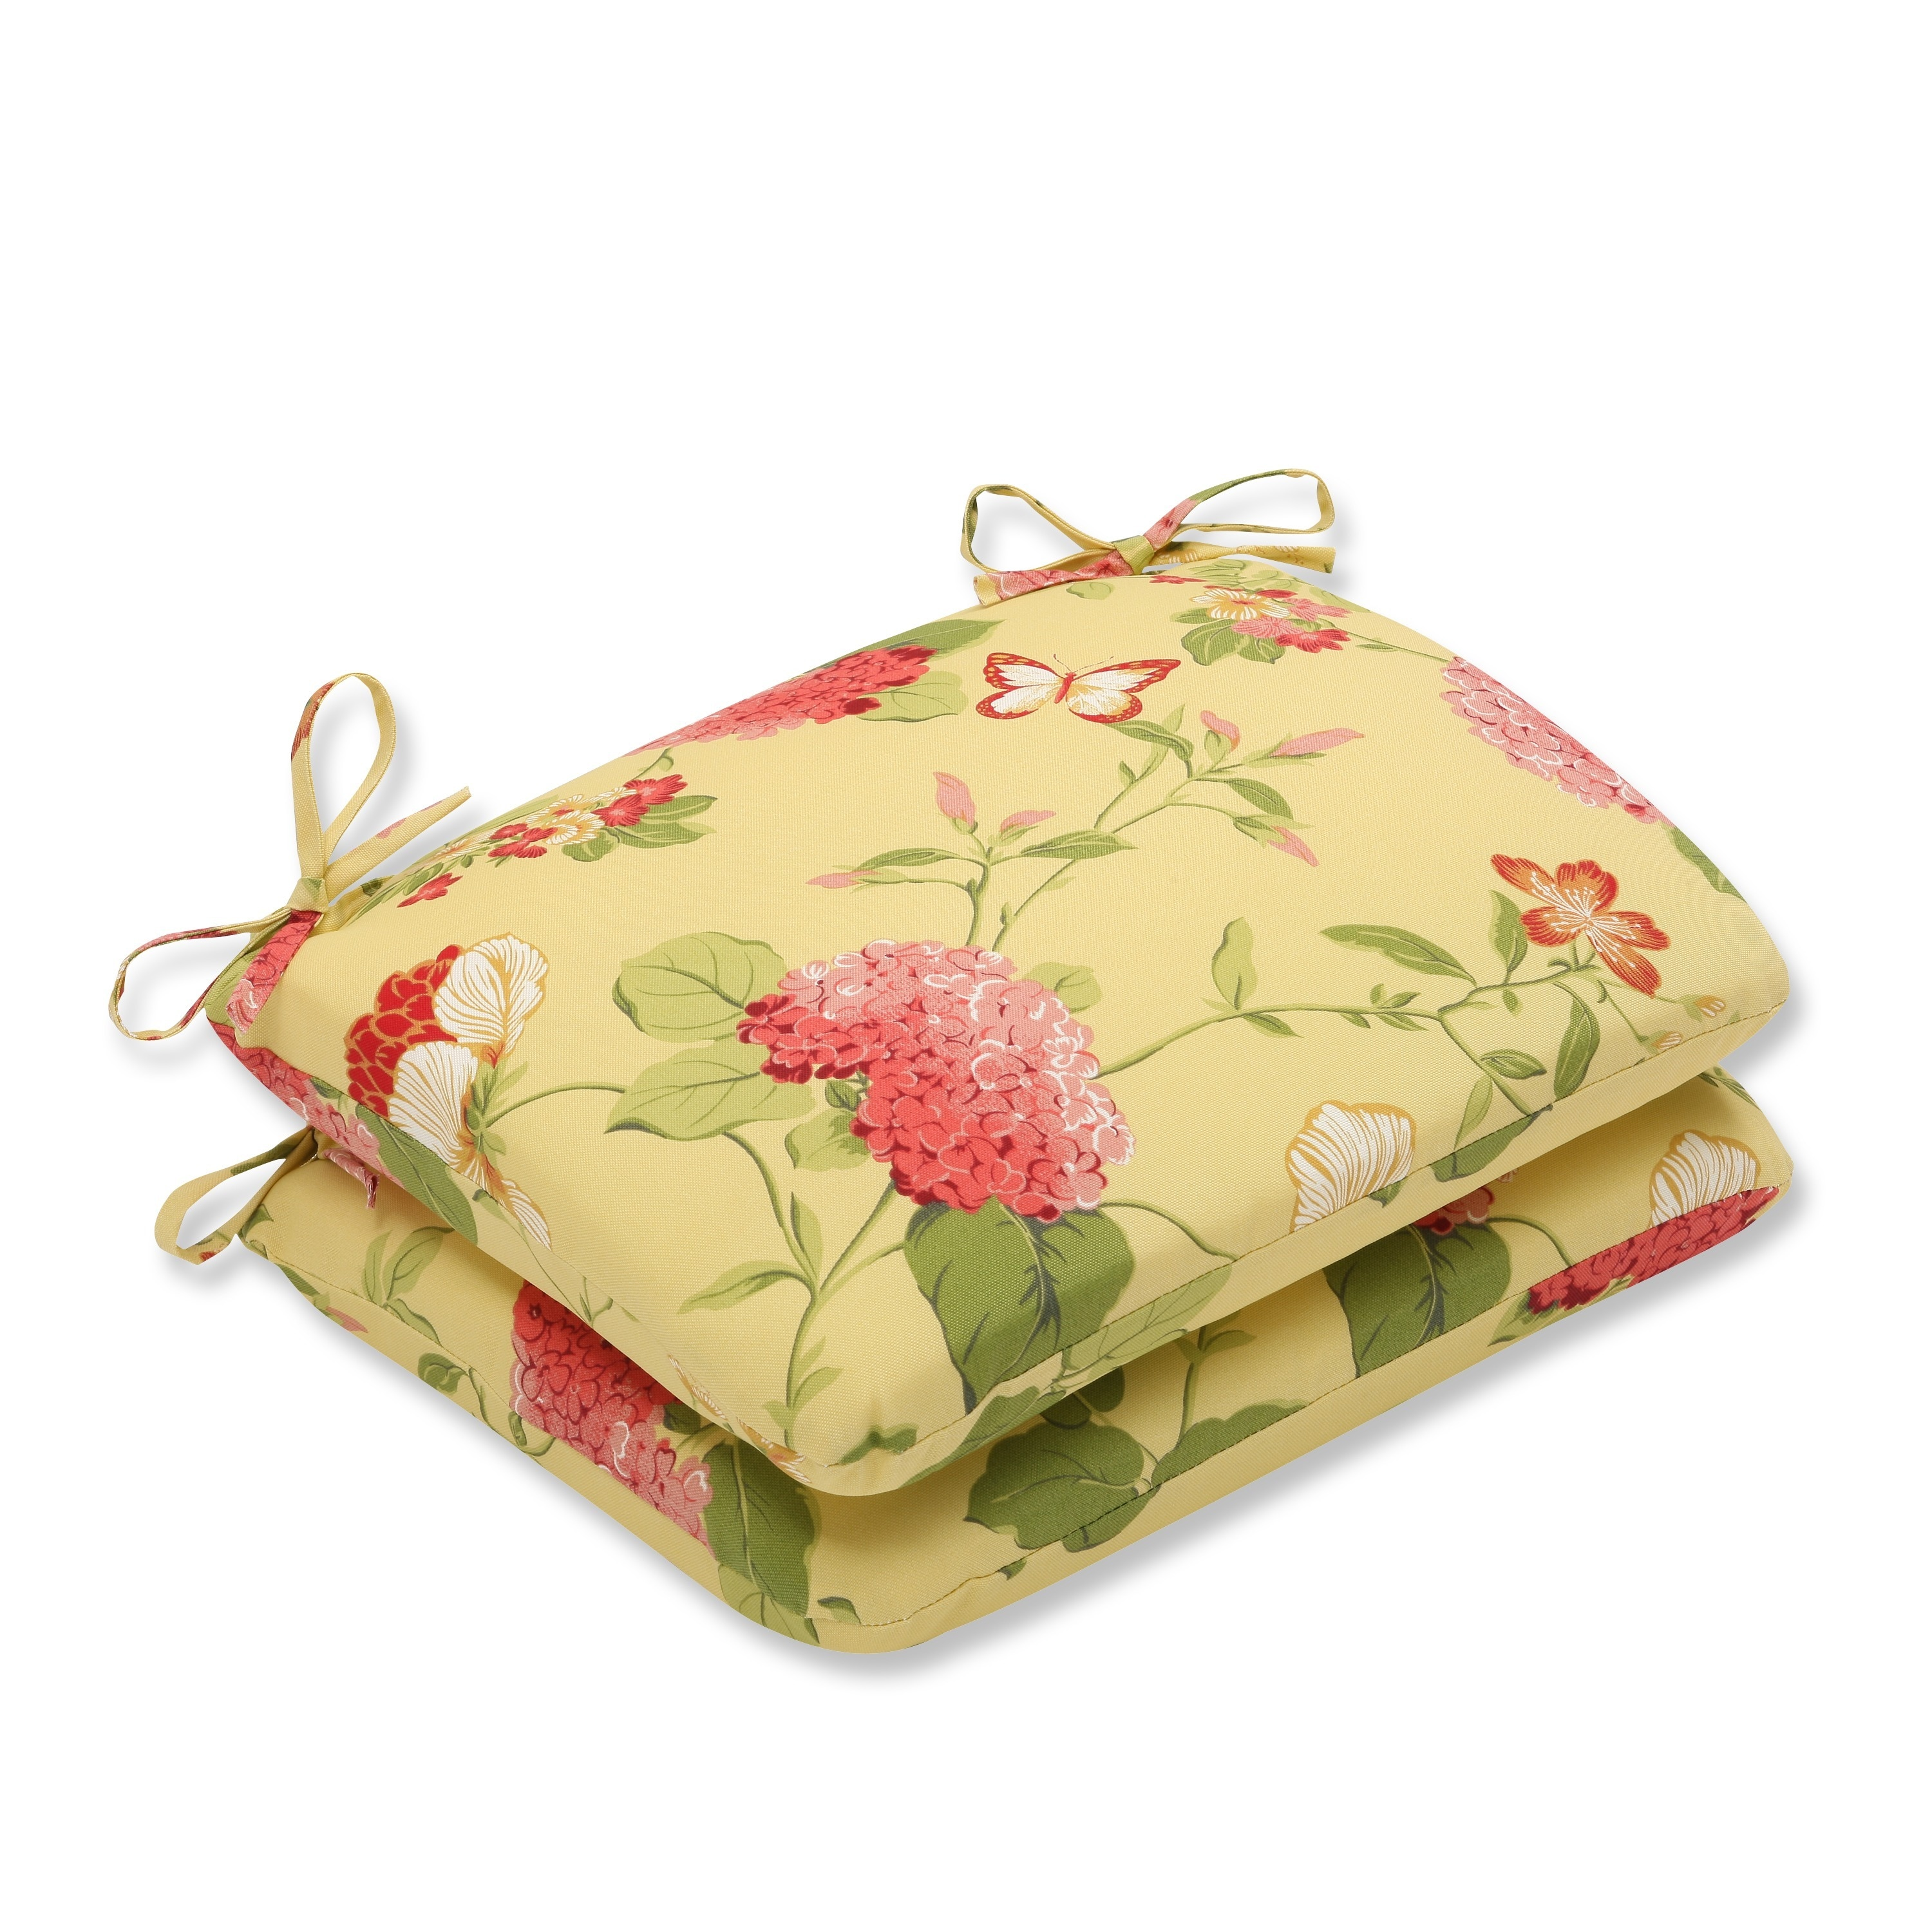 Pillow Perfect Lemonade Outdoor Seat Cushions Set Of 2 Overstock 7820428